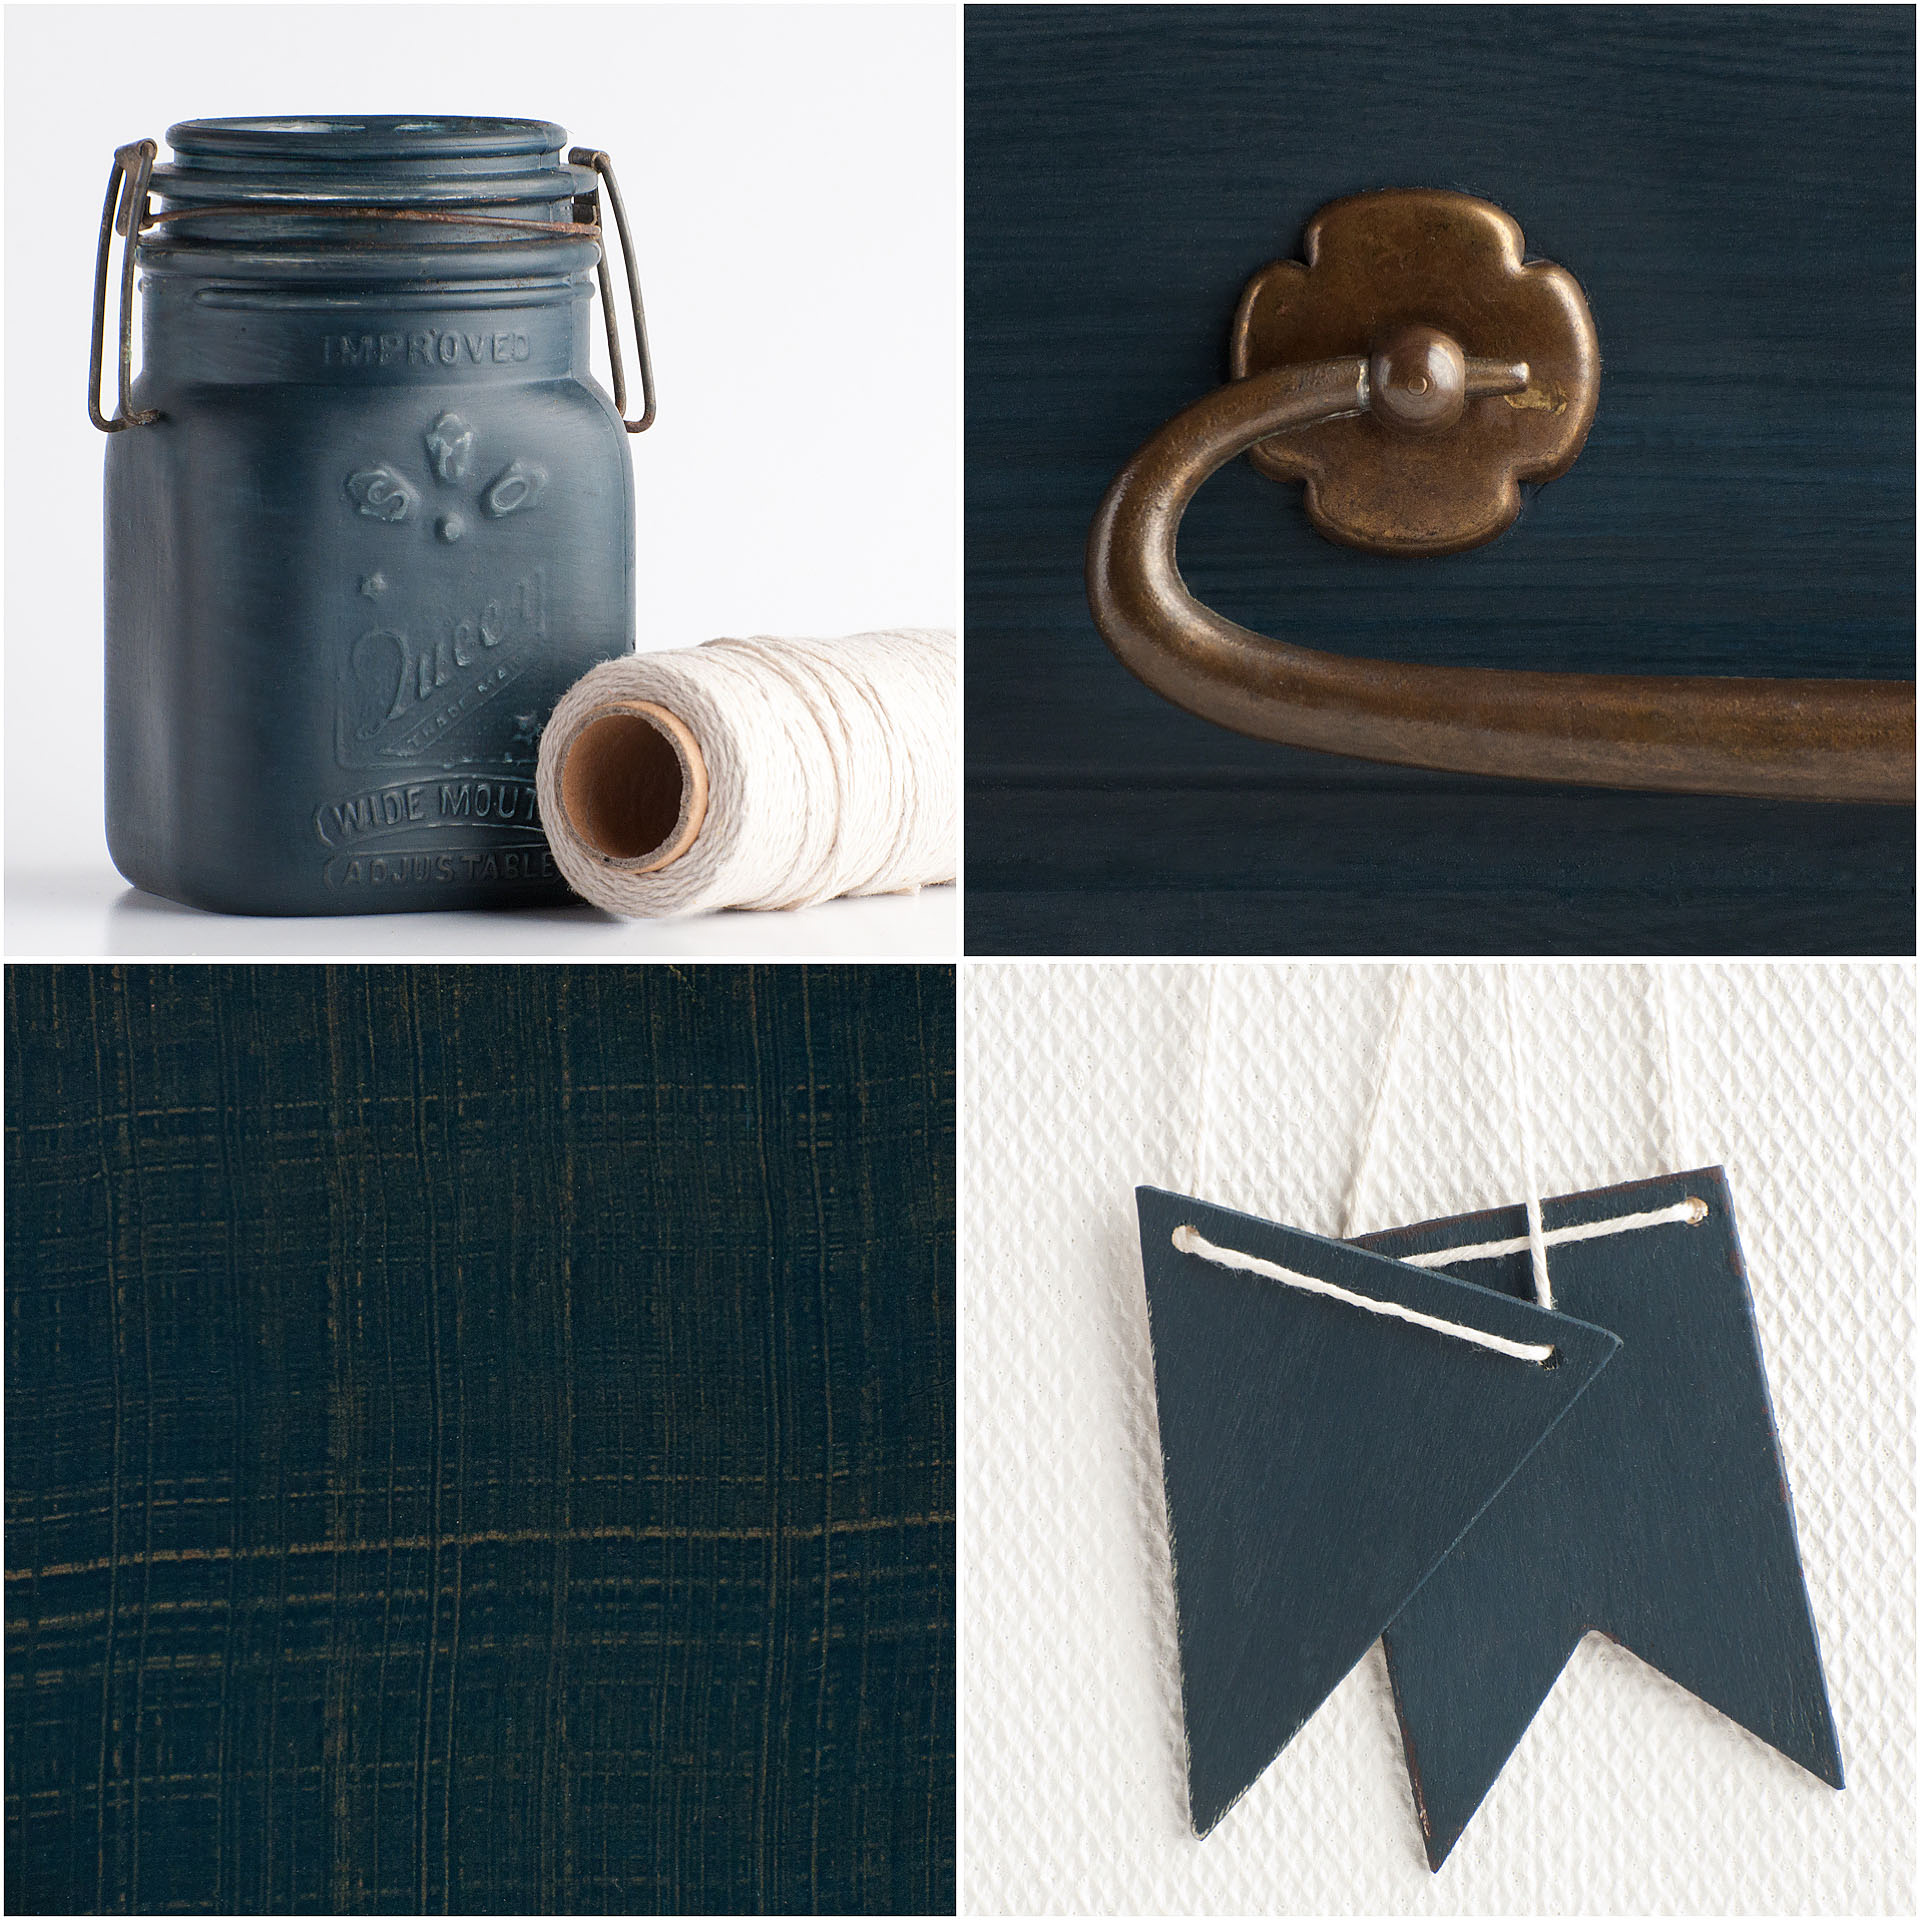 Artissimo is our navy/midnight blue named for the blue and white fabric Marian used in her master suite. Depending on the finish, it can look like a brighter royal blue or almost black.  Artissimo pairs well with Boxwood and the other blues in our line.